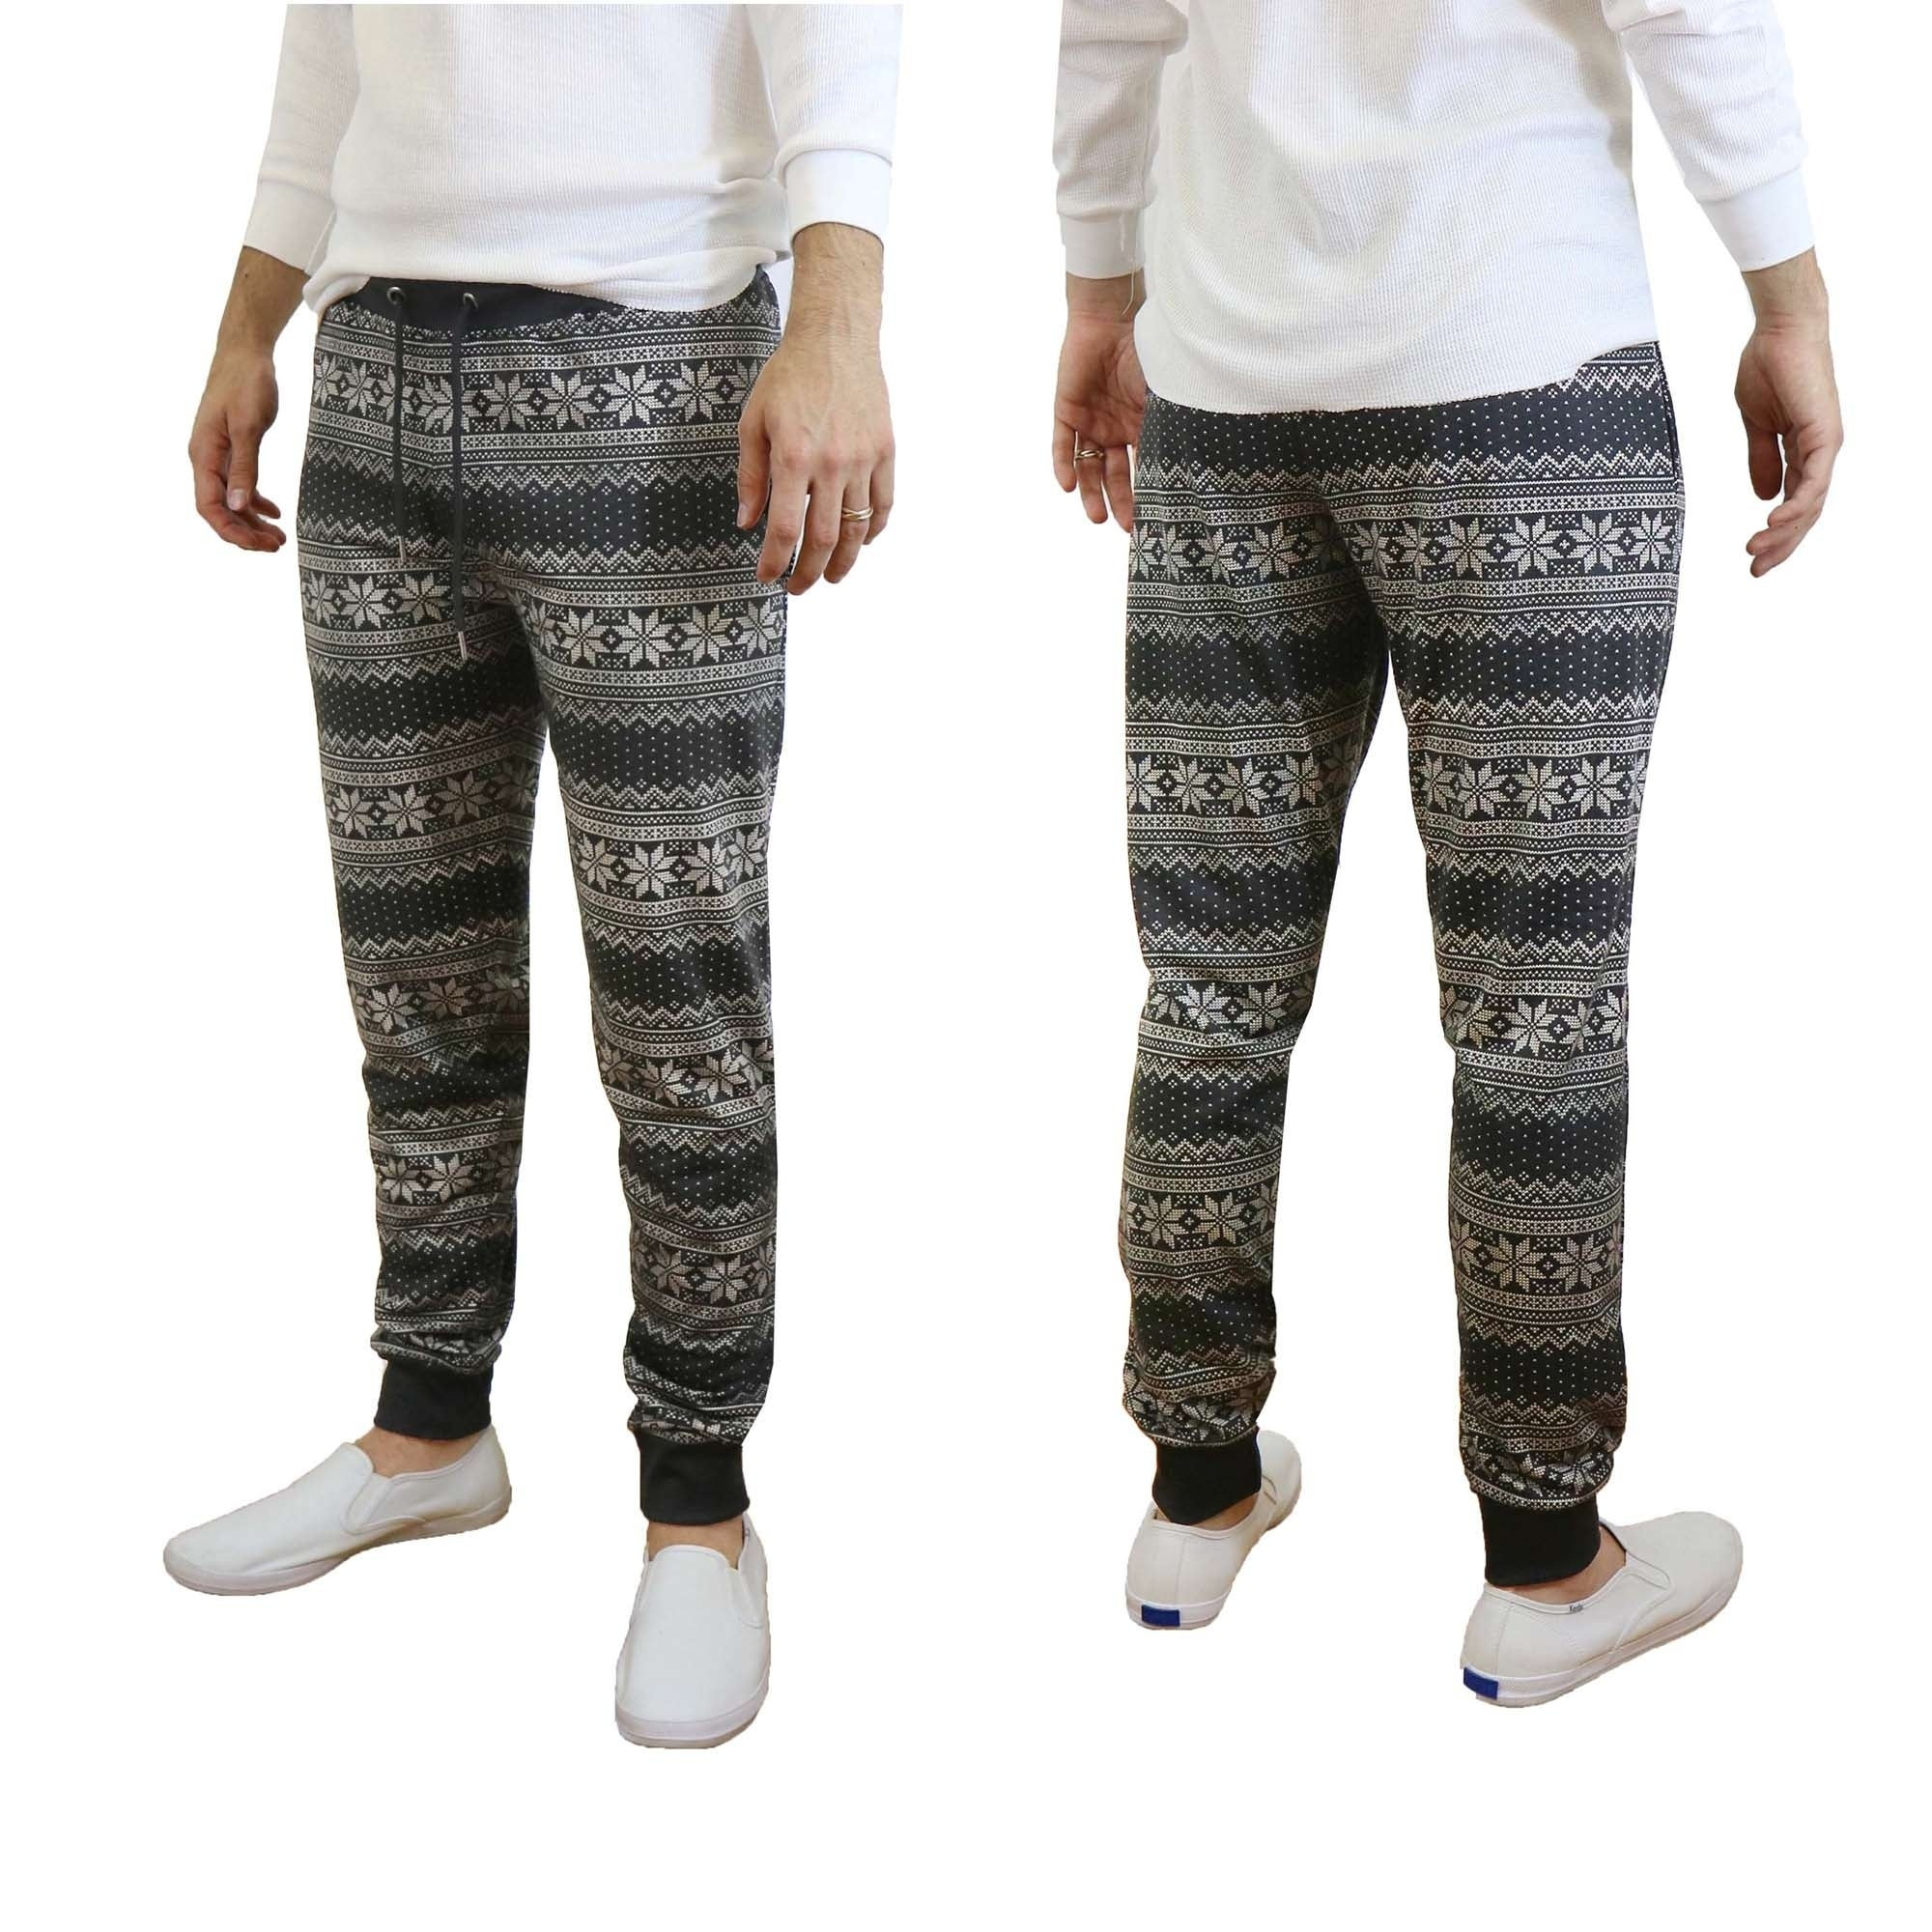 19caa5fef Shop Galaxy By Harvic Men's Black Snowflake Printed Christmas Ugly Holiday  Joggers - Free Shipping On Orders Over $45 - Overstock - 19397310